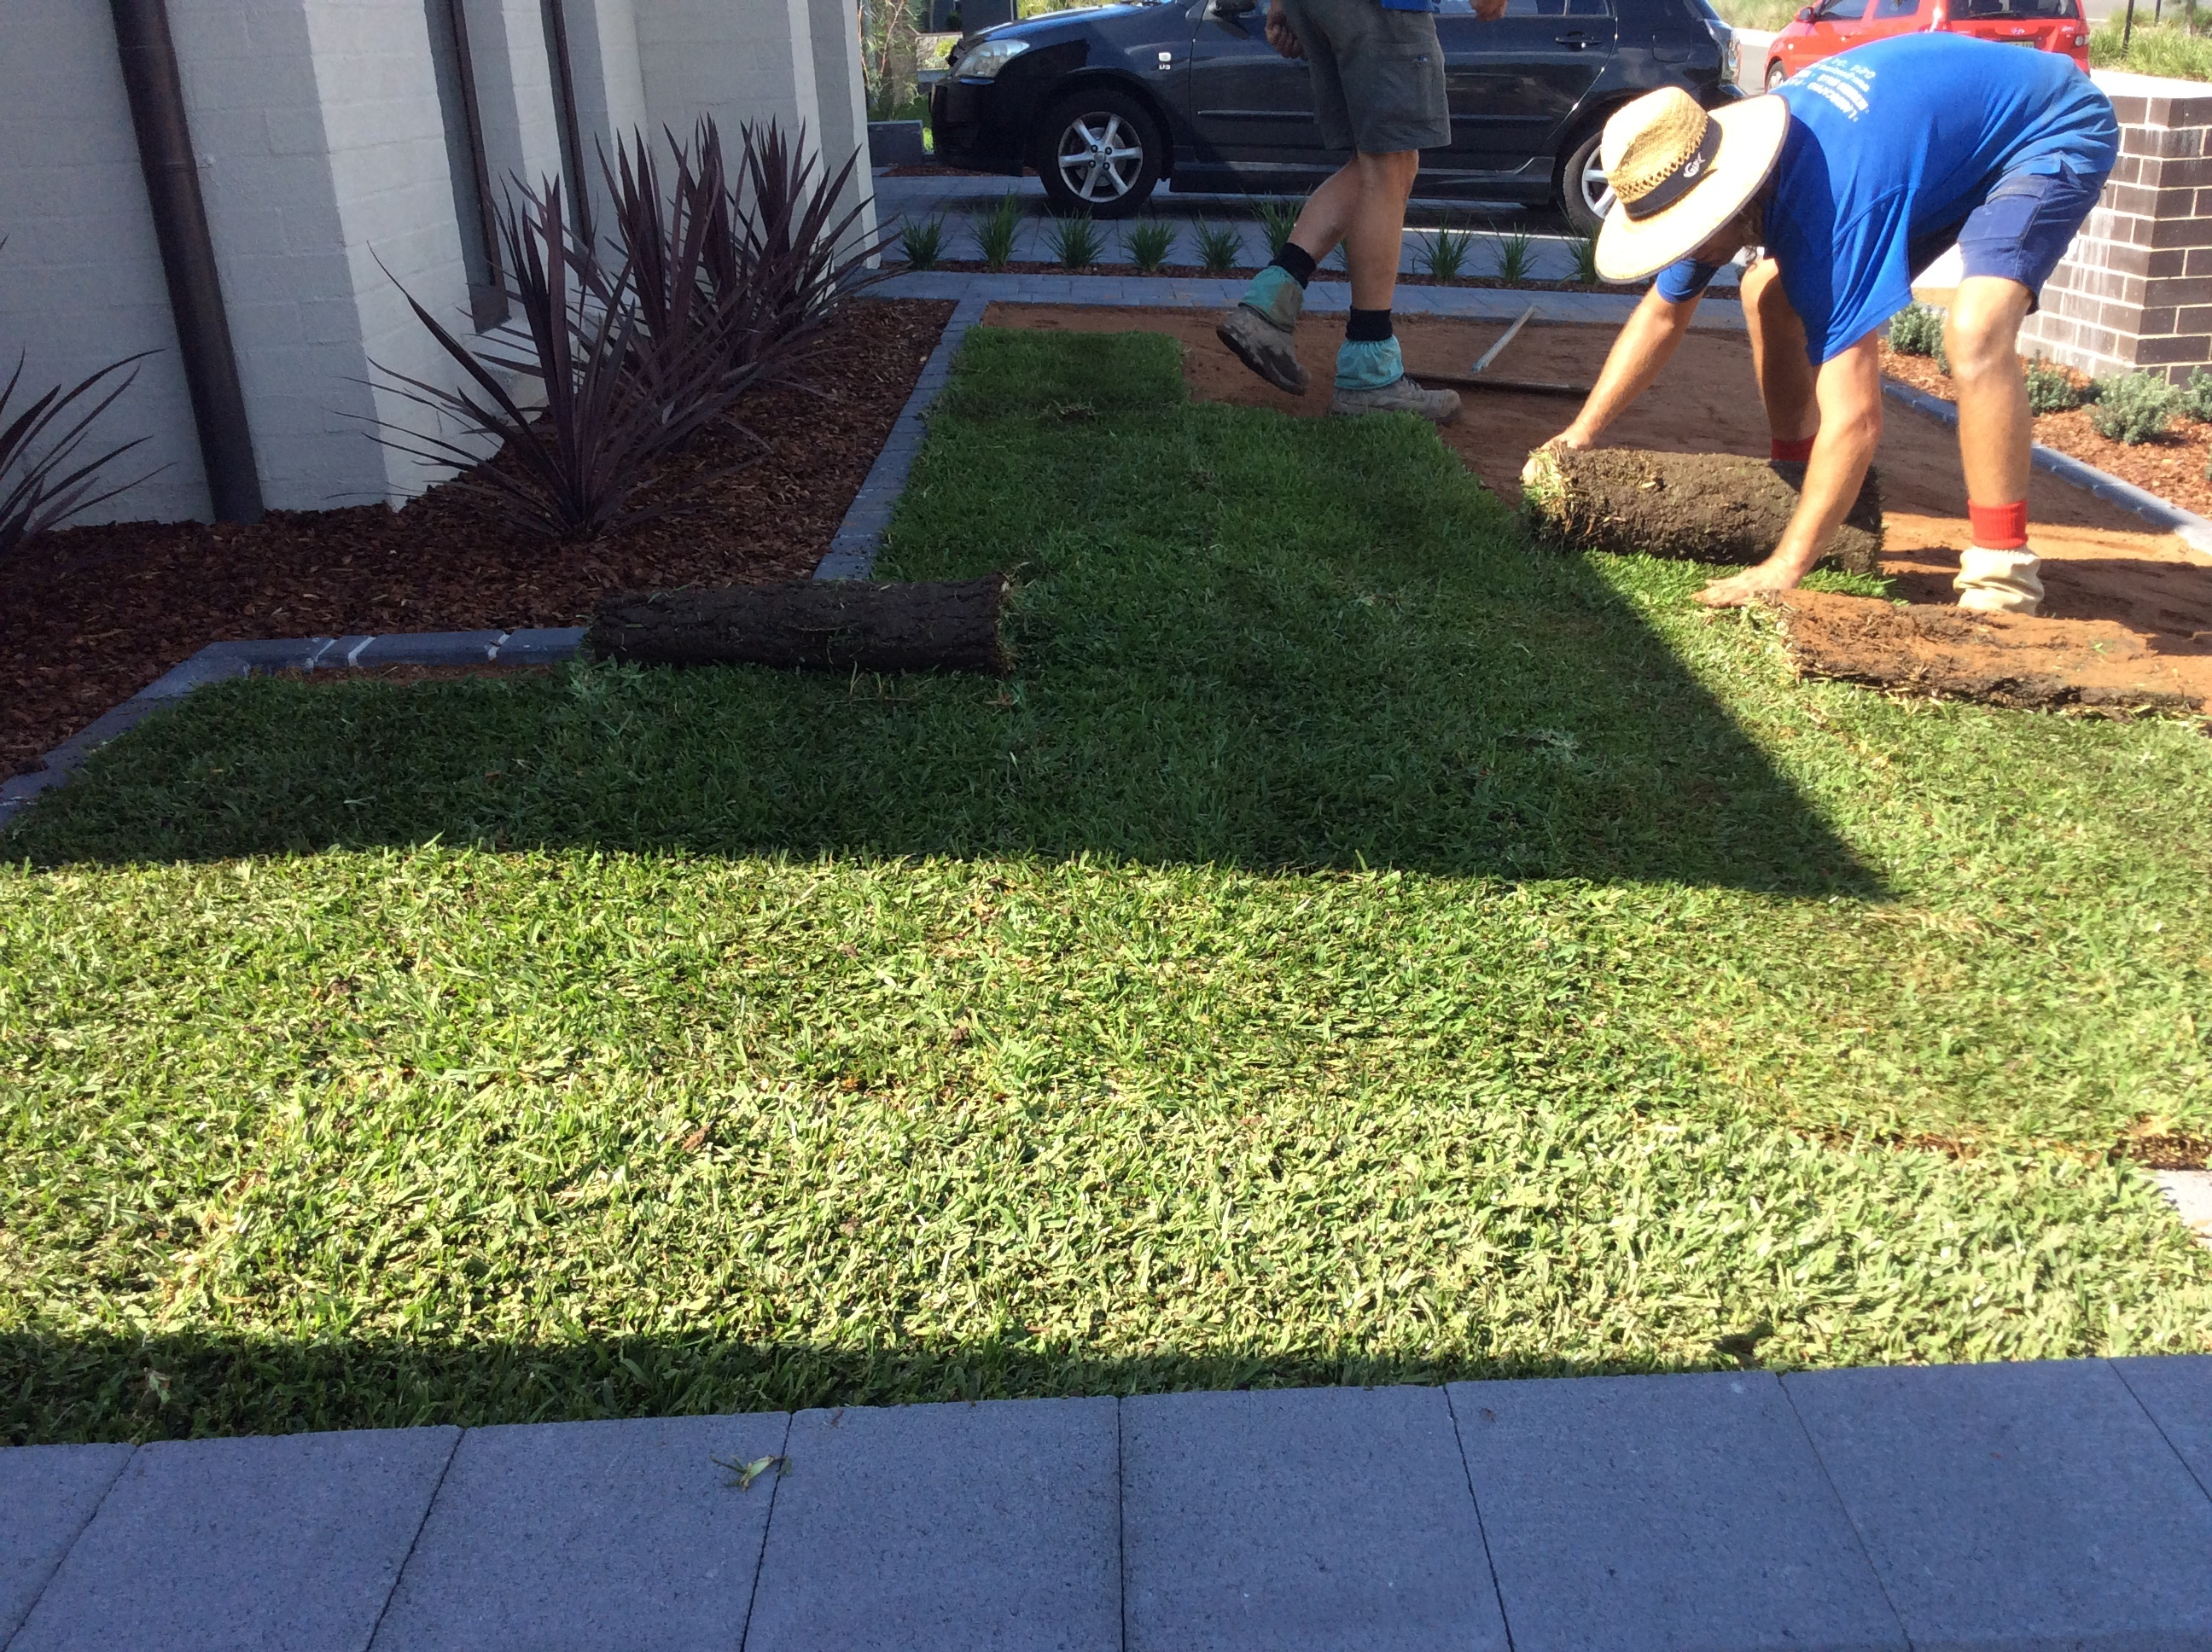 How soon should I lay my new grass